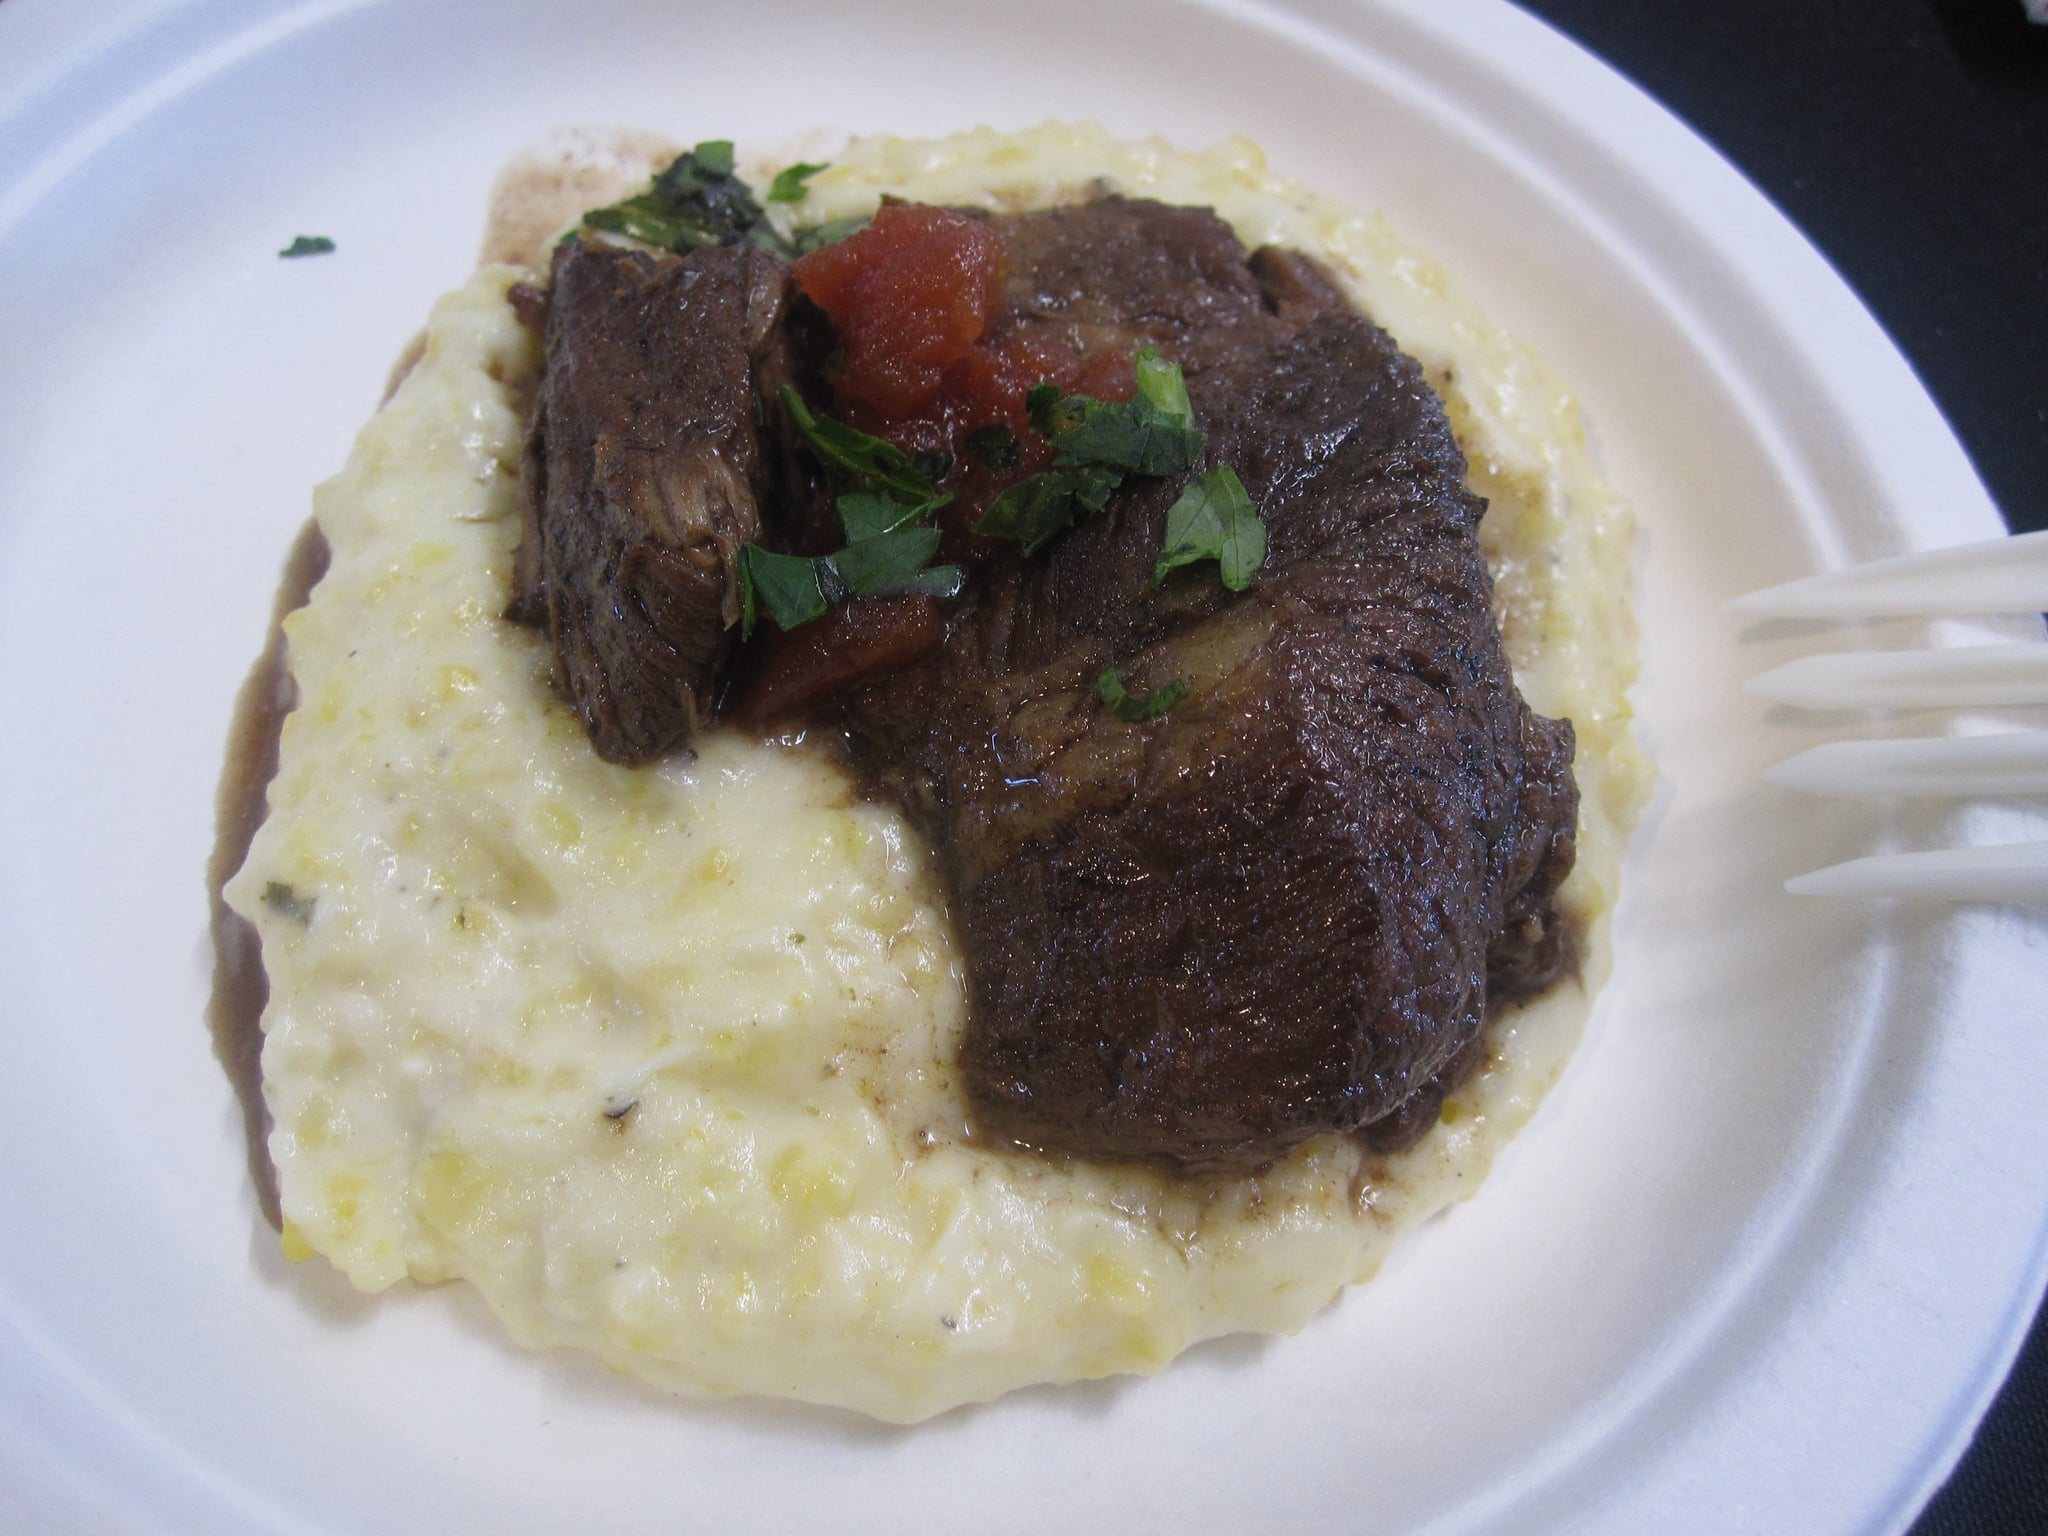 This braised lamb leg won the people's choice award, but I think it won because it was served on a bed of blue cheese grits. They were to die for.